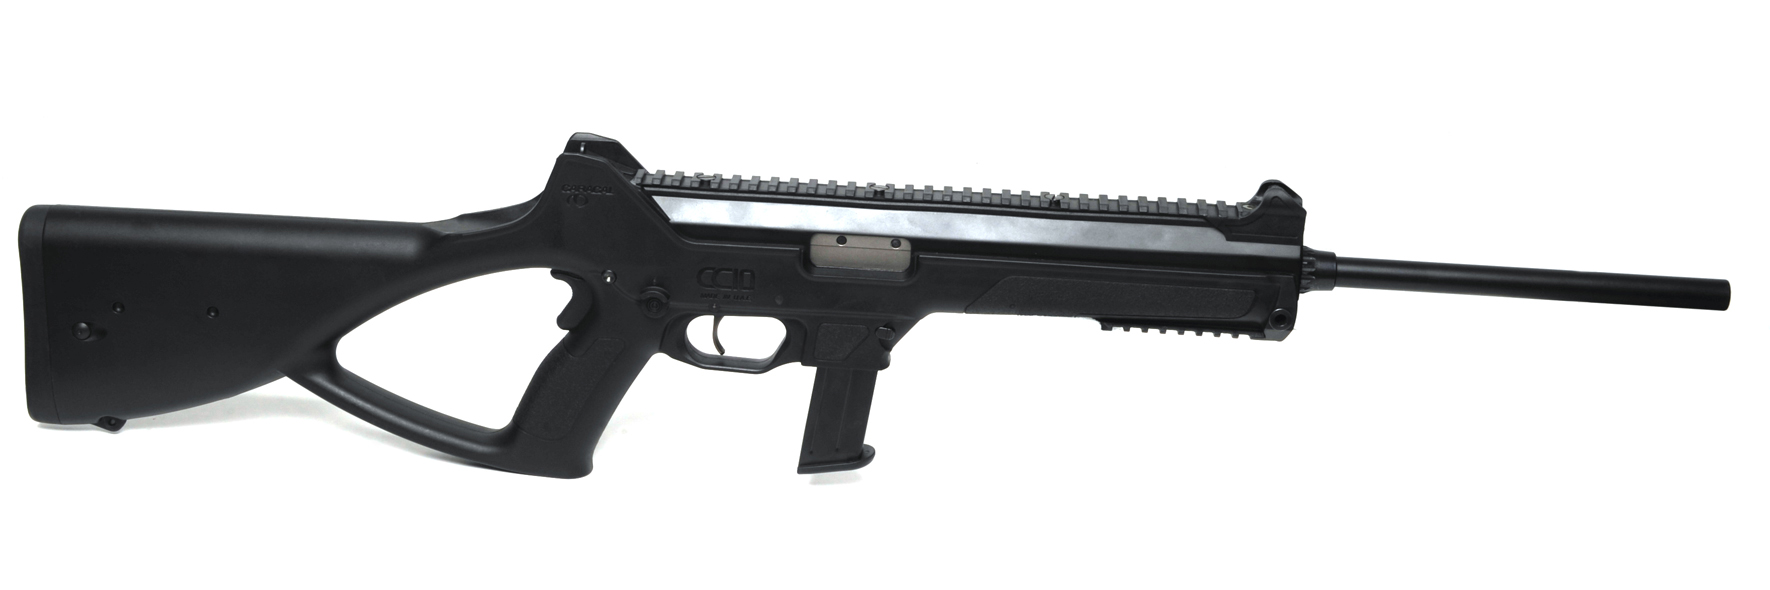 CC10 Long barrel